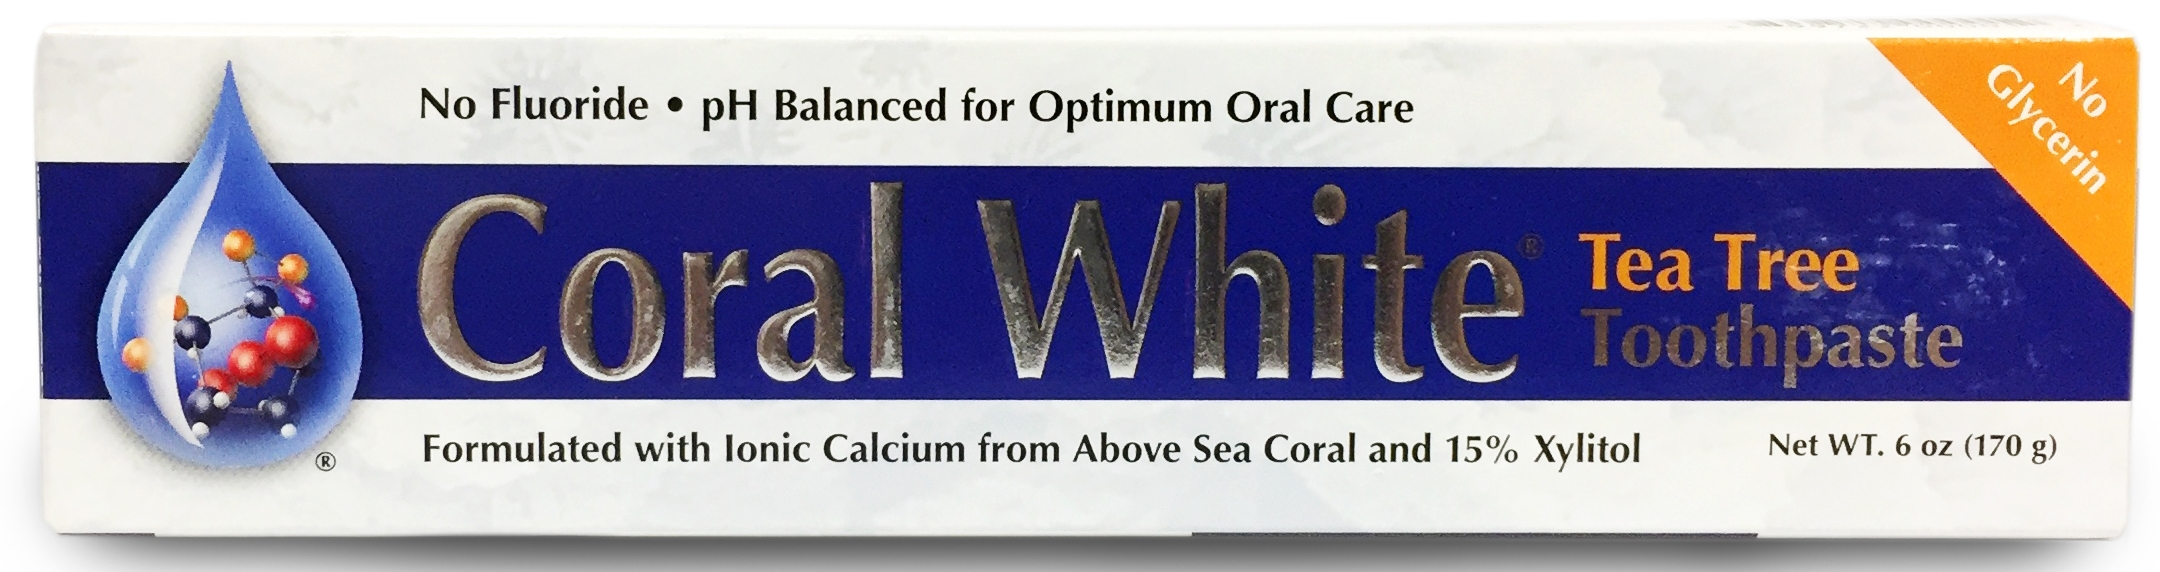 Coral White Tea Tree Toothpaste 6 oz (170 g) by Coral LLC